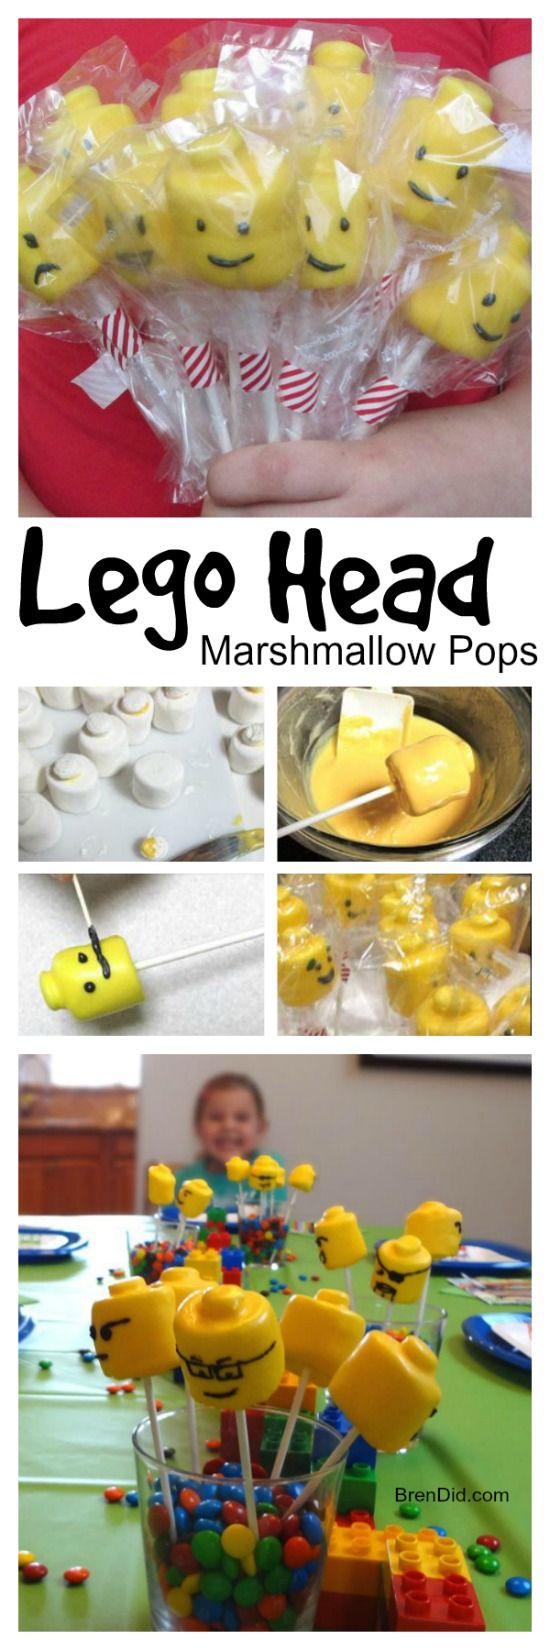 Lego Head Marshmallow Pops Recipe #marshmallows